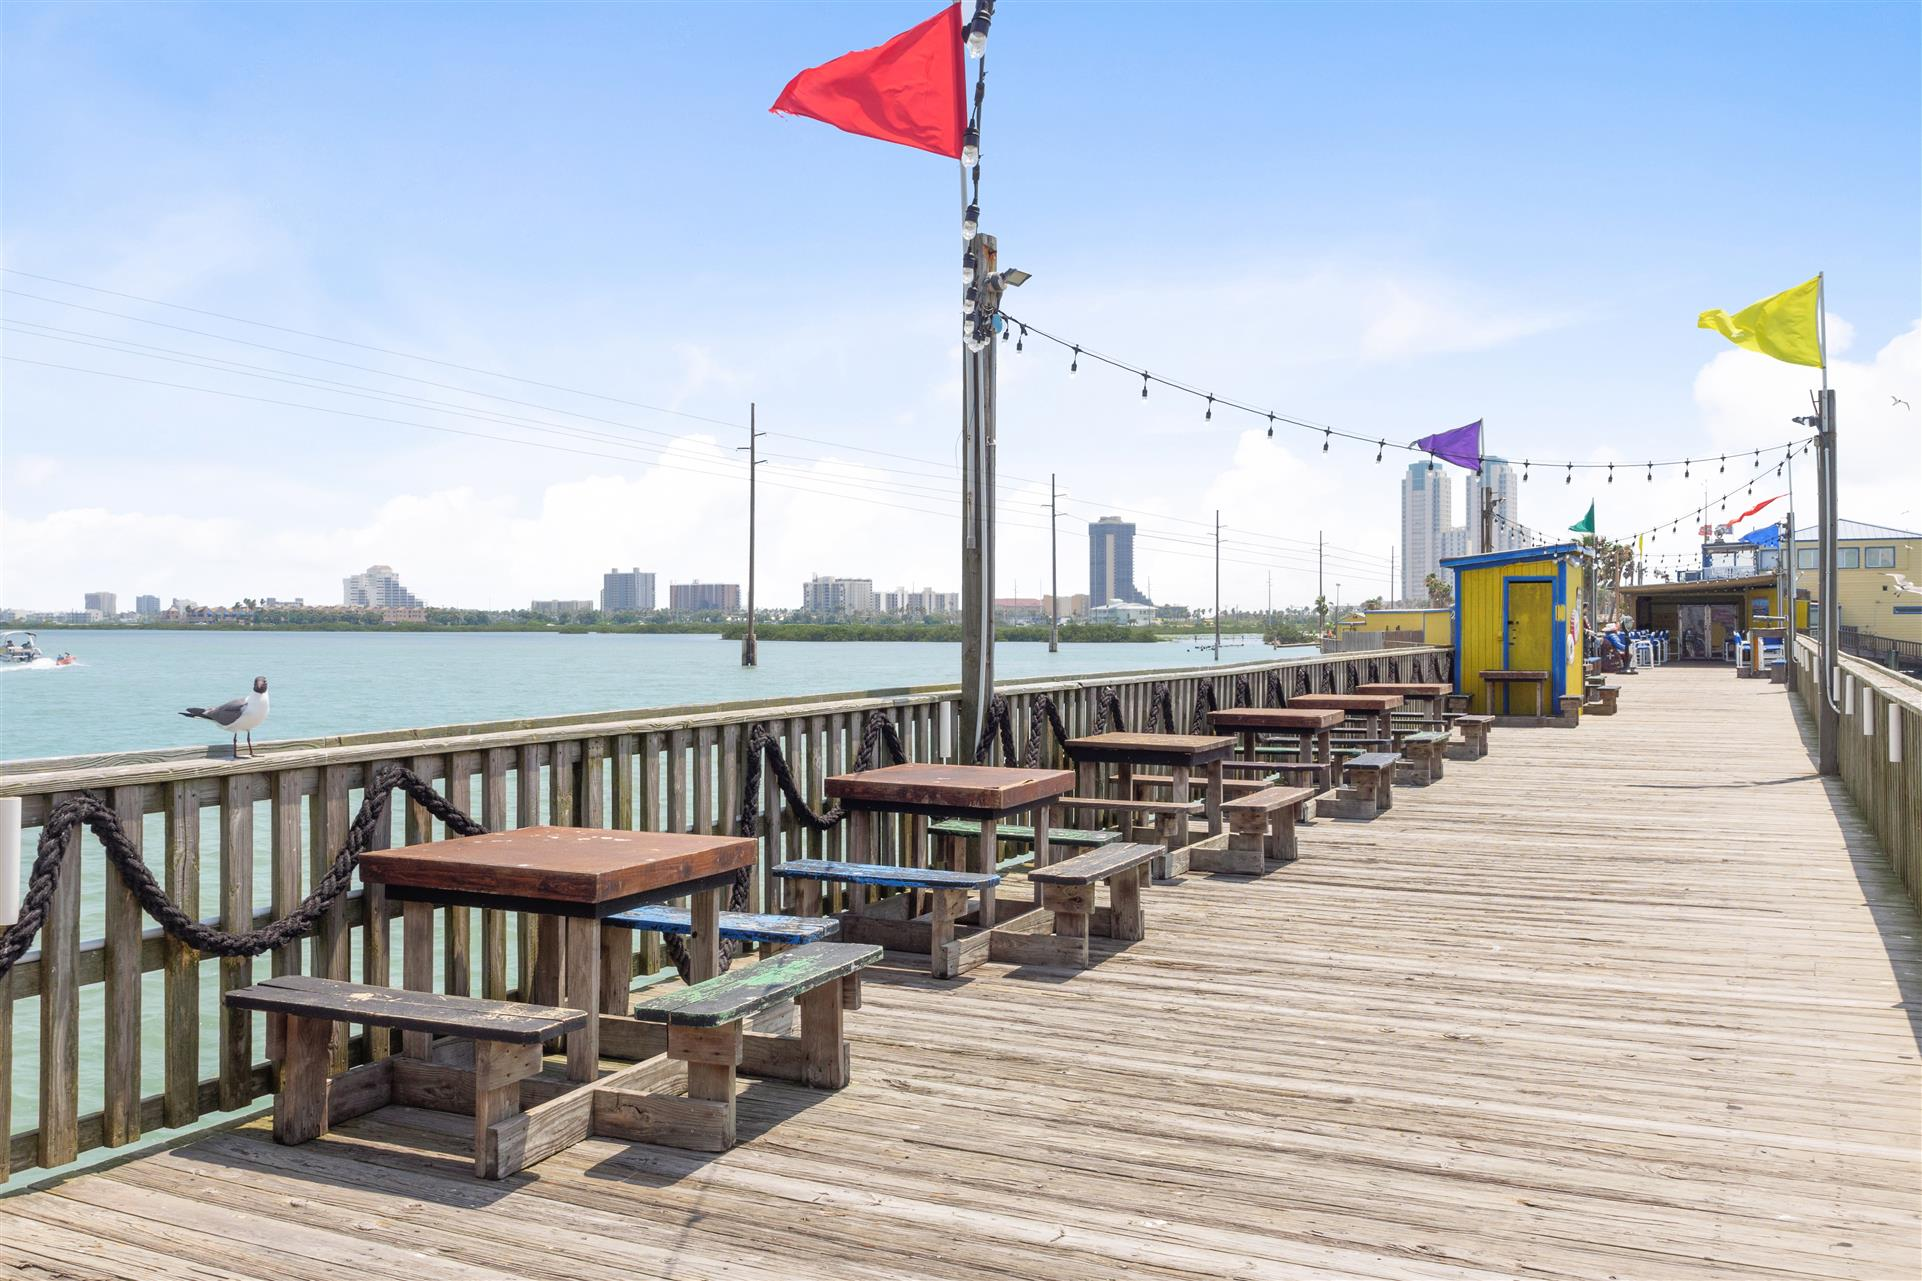 outdoor dining tables along the pier